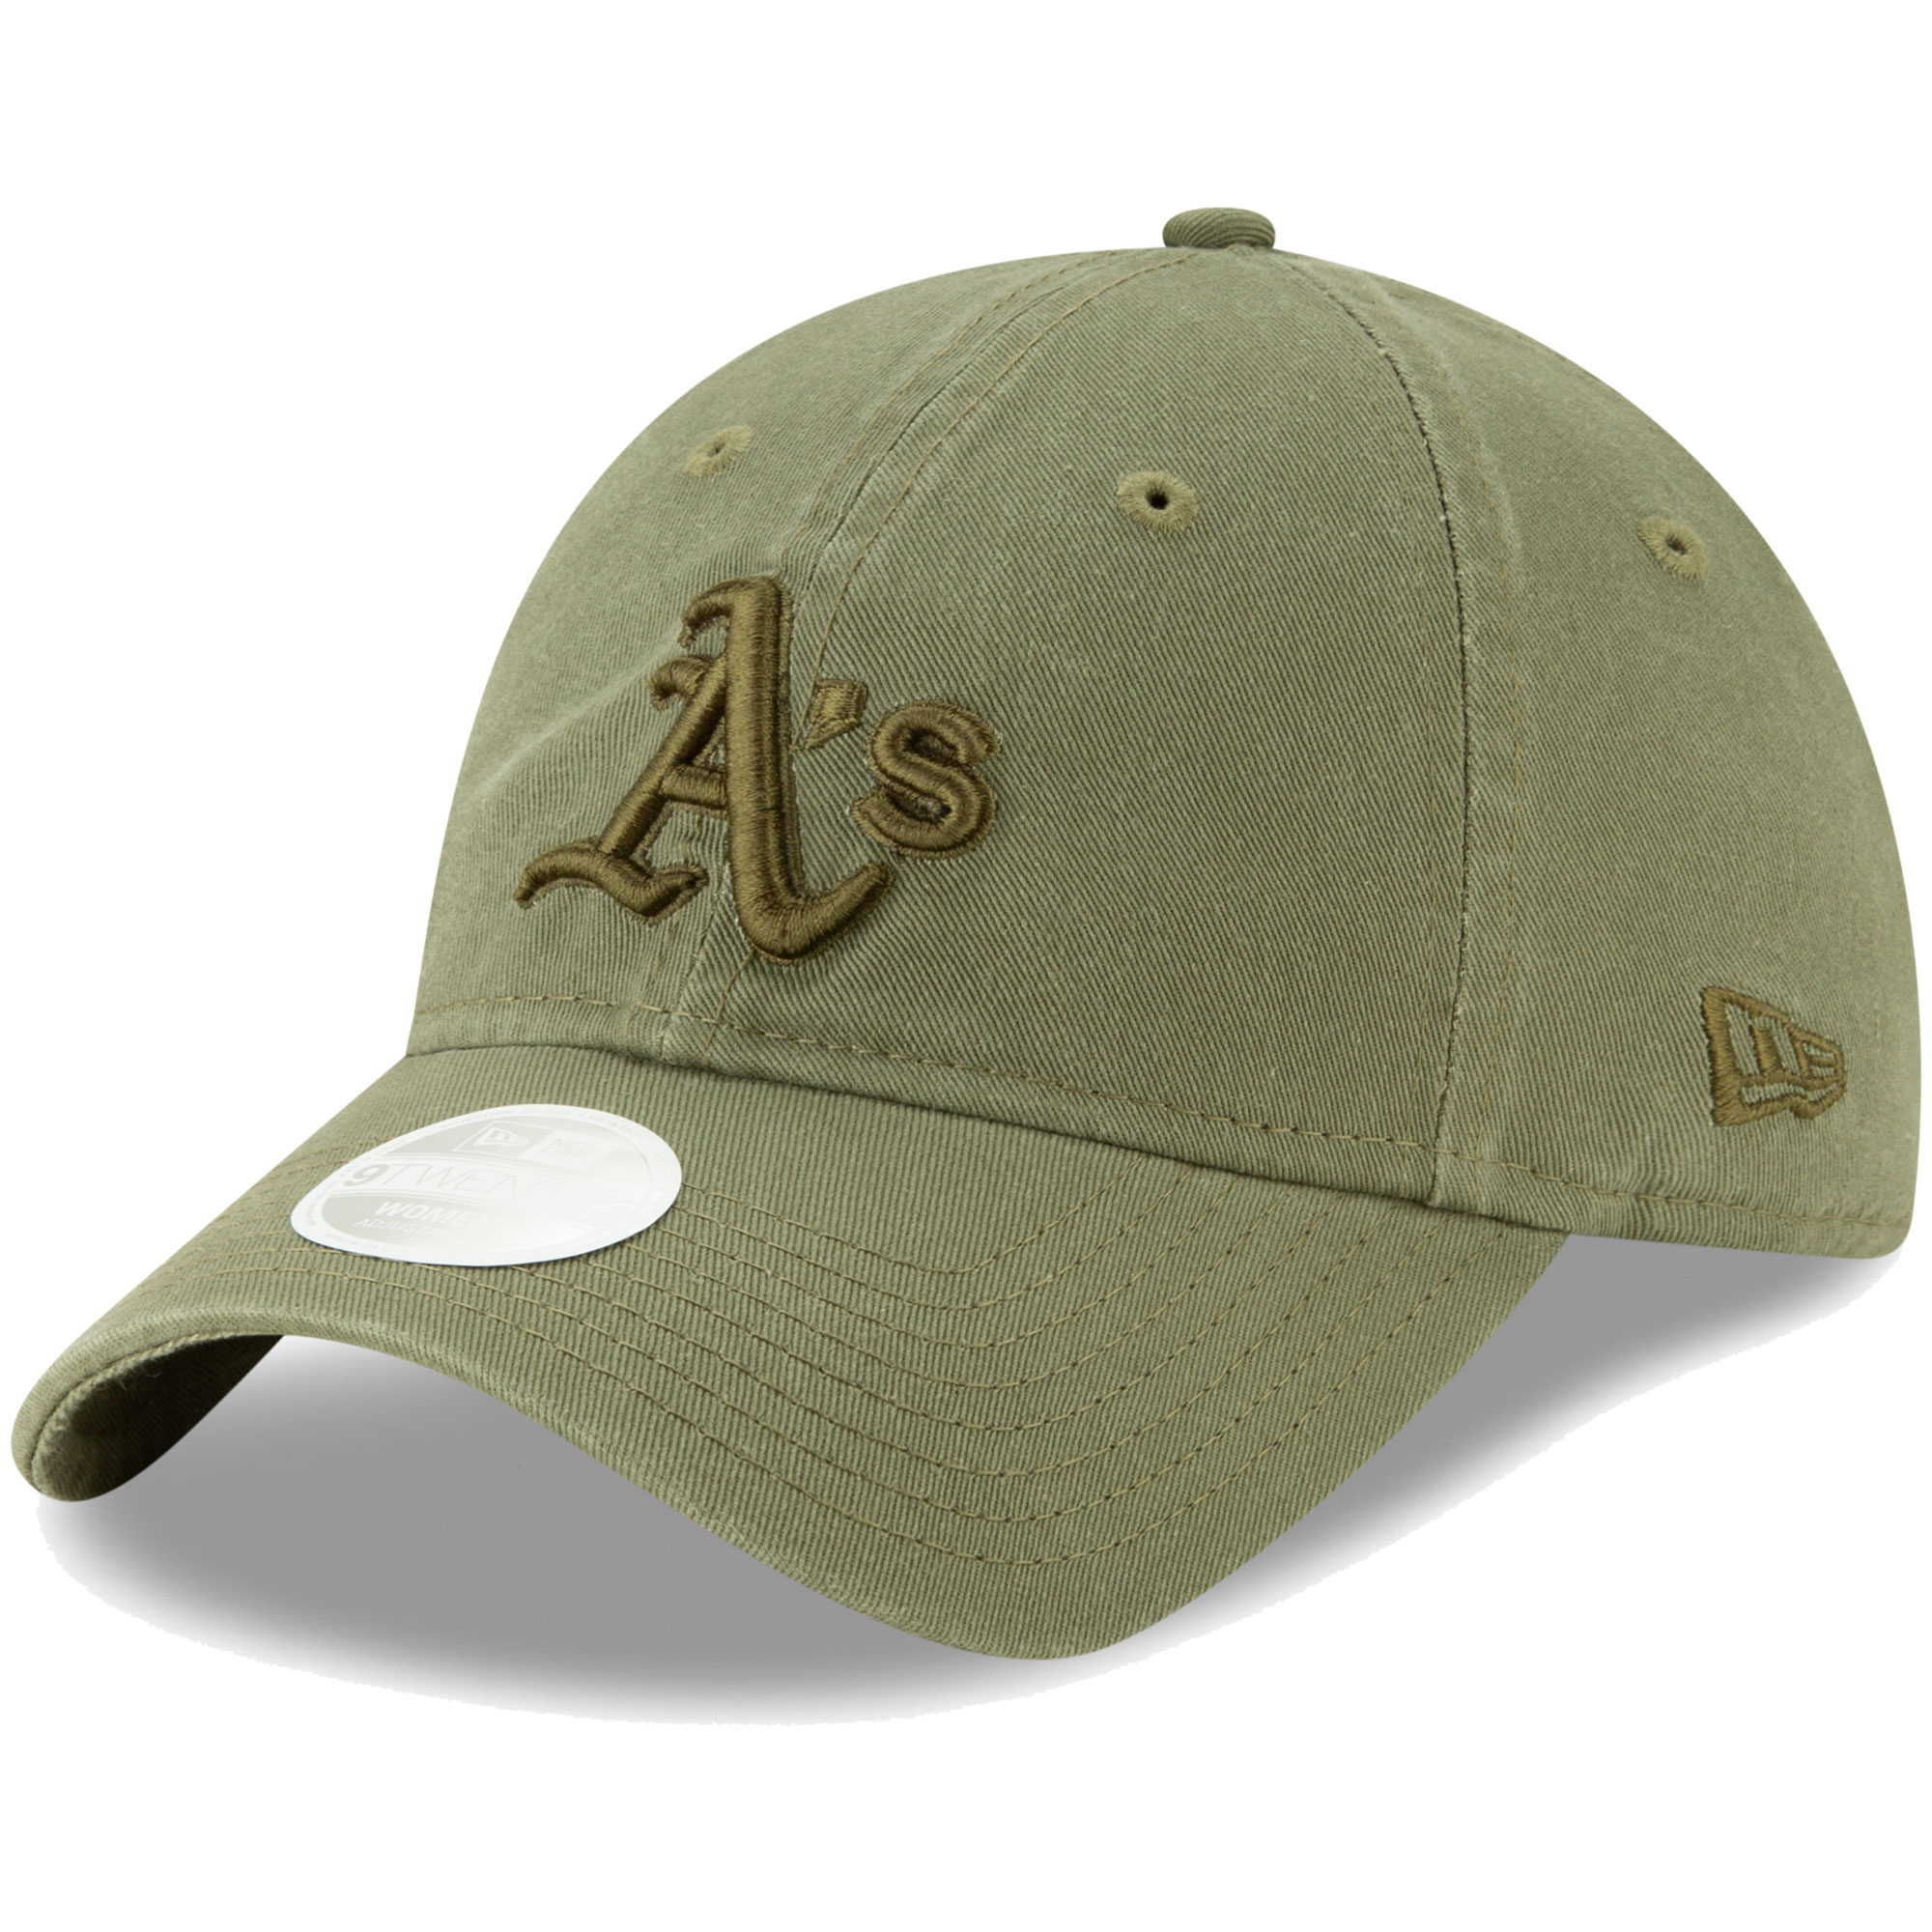 Oakland Athletics New Era Women's Bark Tonal Core Classic 9TWENTY Adjustable Hat - Olive - OSFA